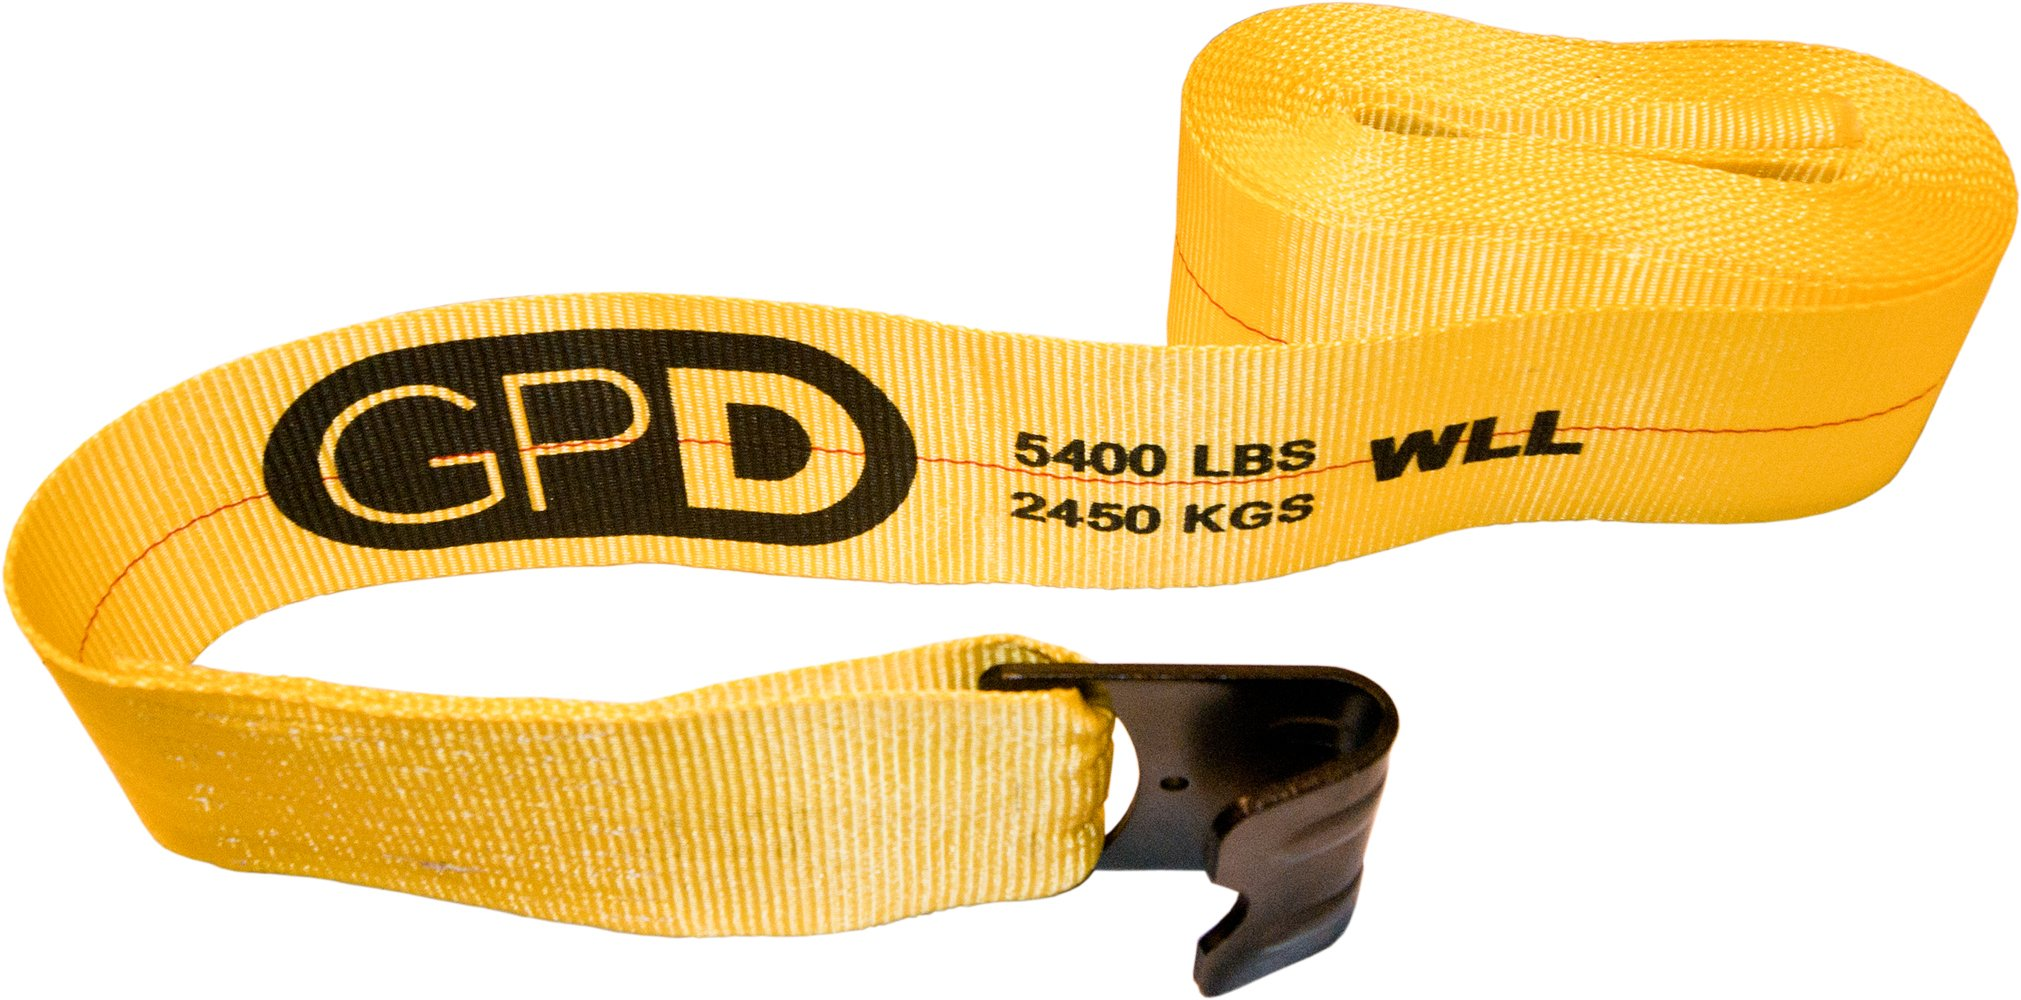 Ten 4'' x 30' Winch Straps with Flat Hooks for Flatbed Trailers Trucks by GPD